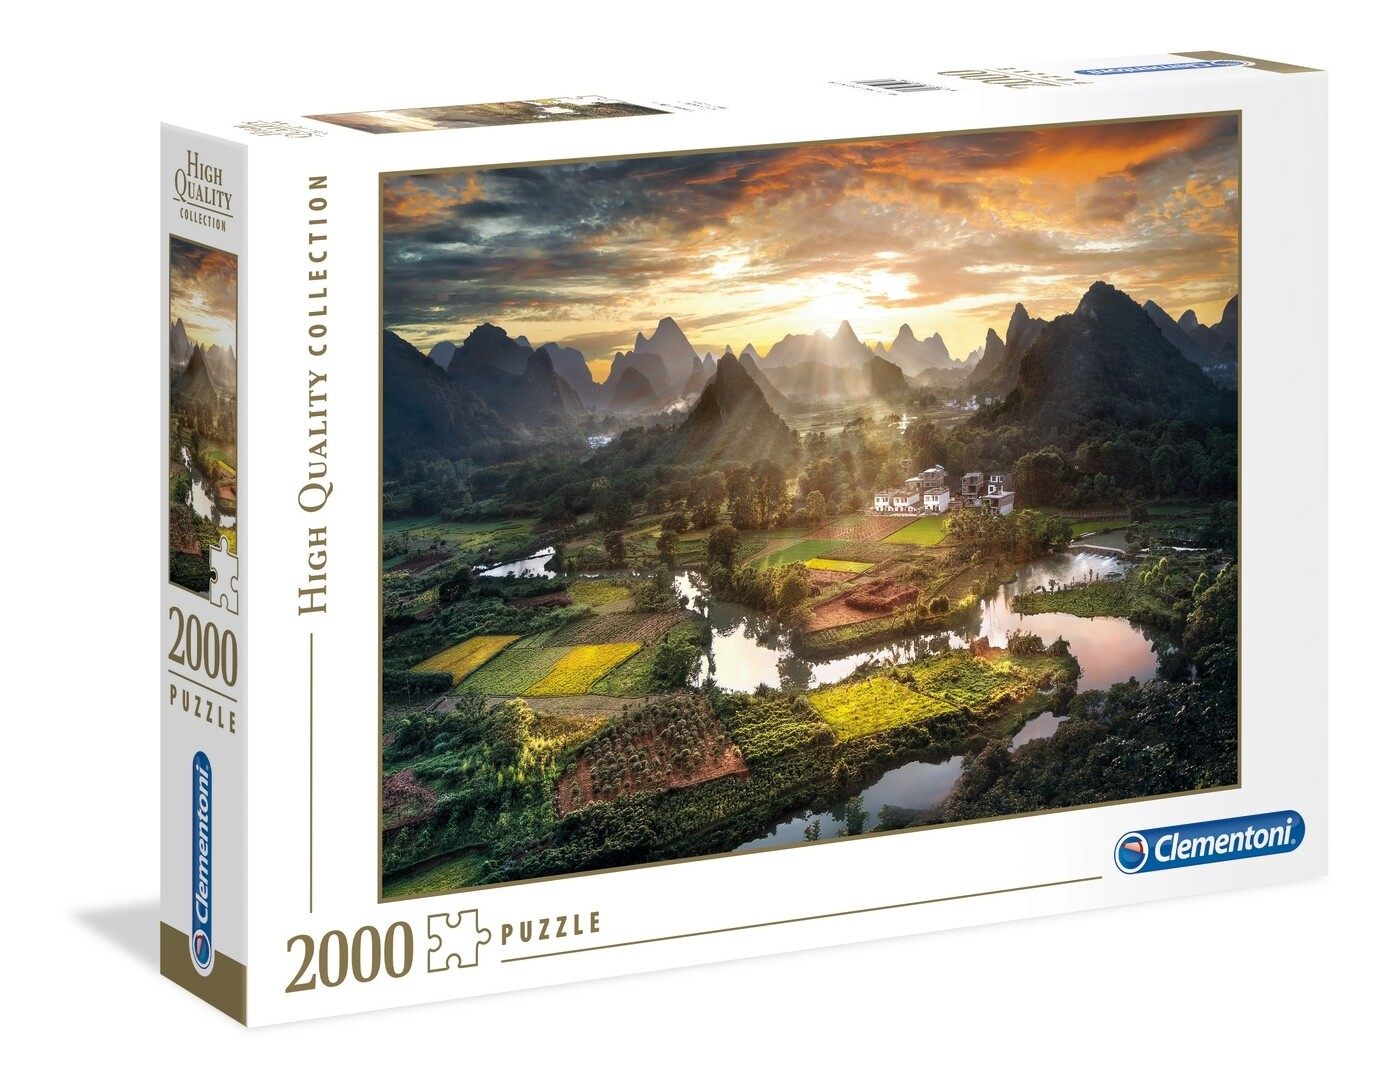 PUZZLE 2000 HQ Views of China - CLEMENTONI